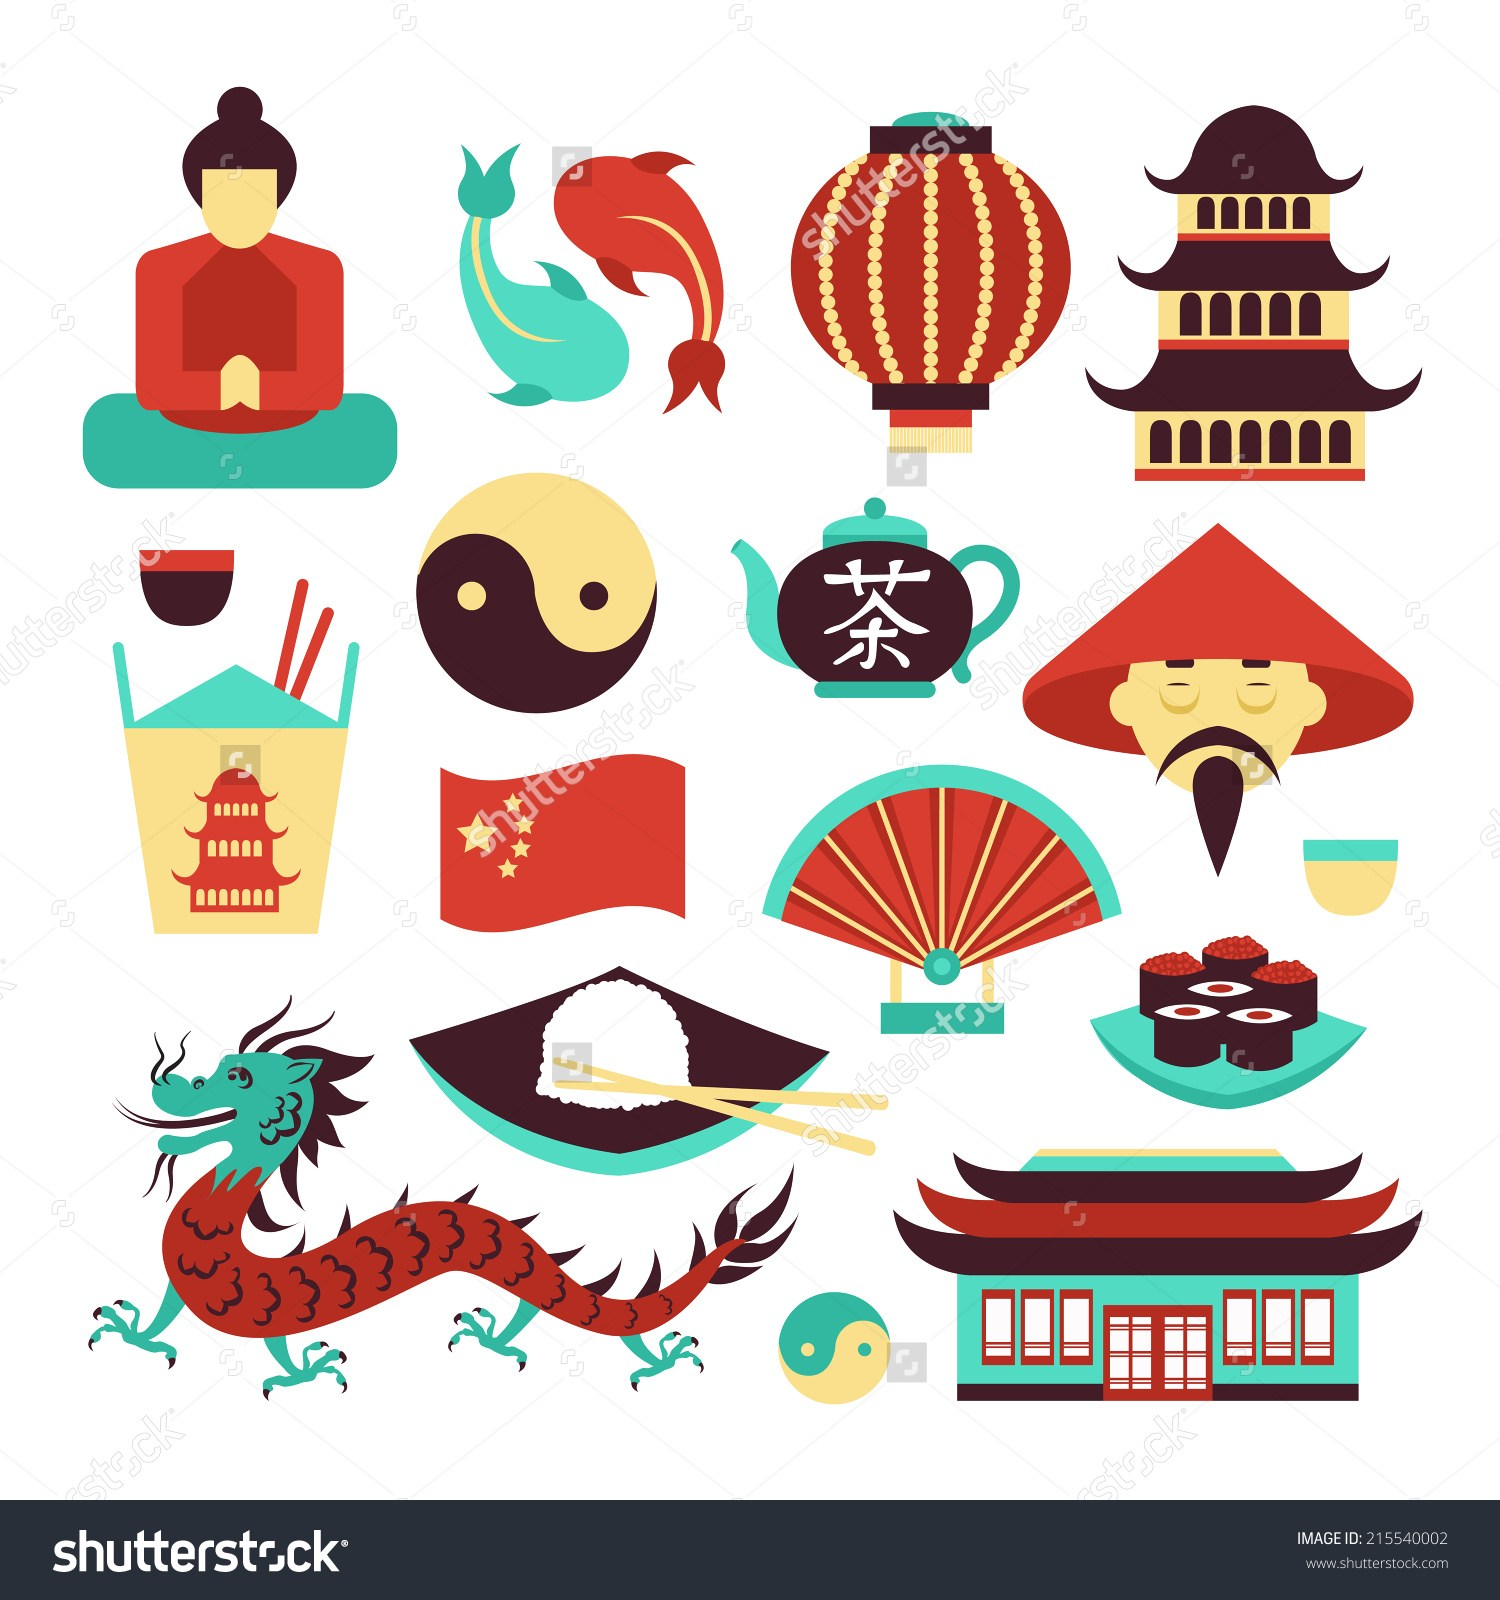 Chinese culture clipart 6 » Clipart Portal.